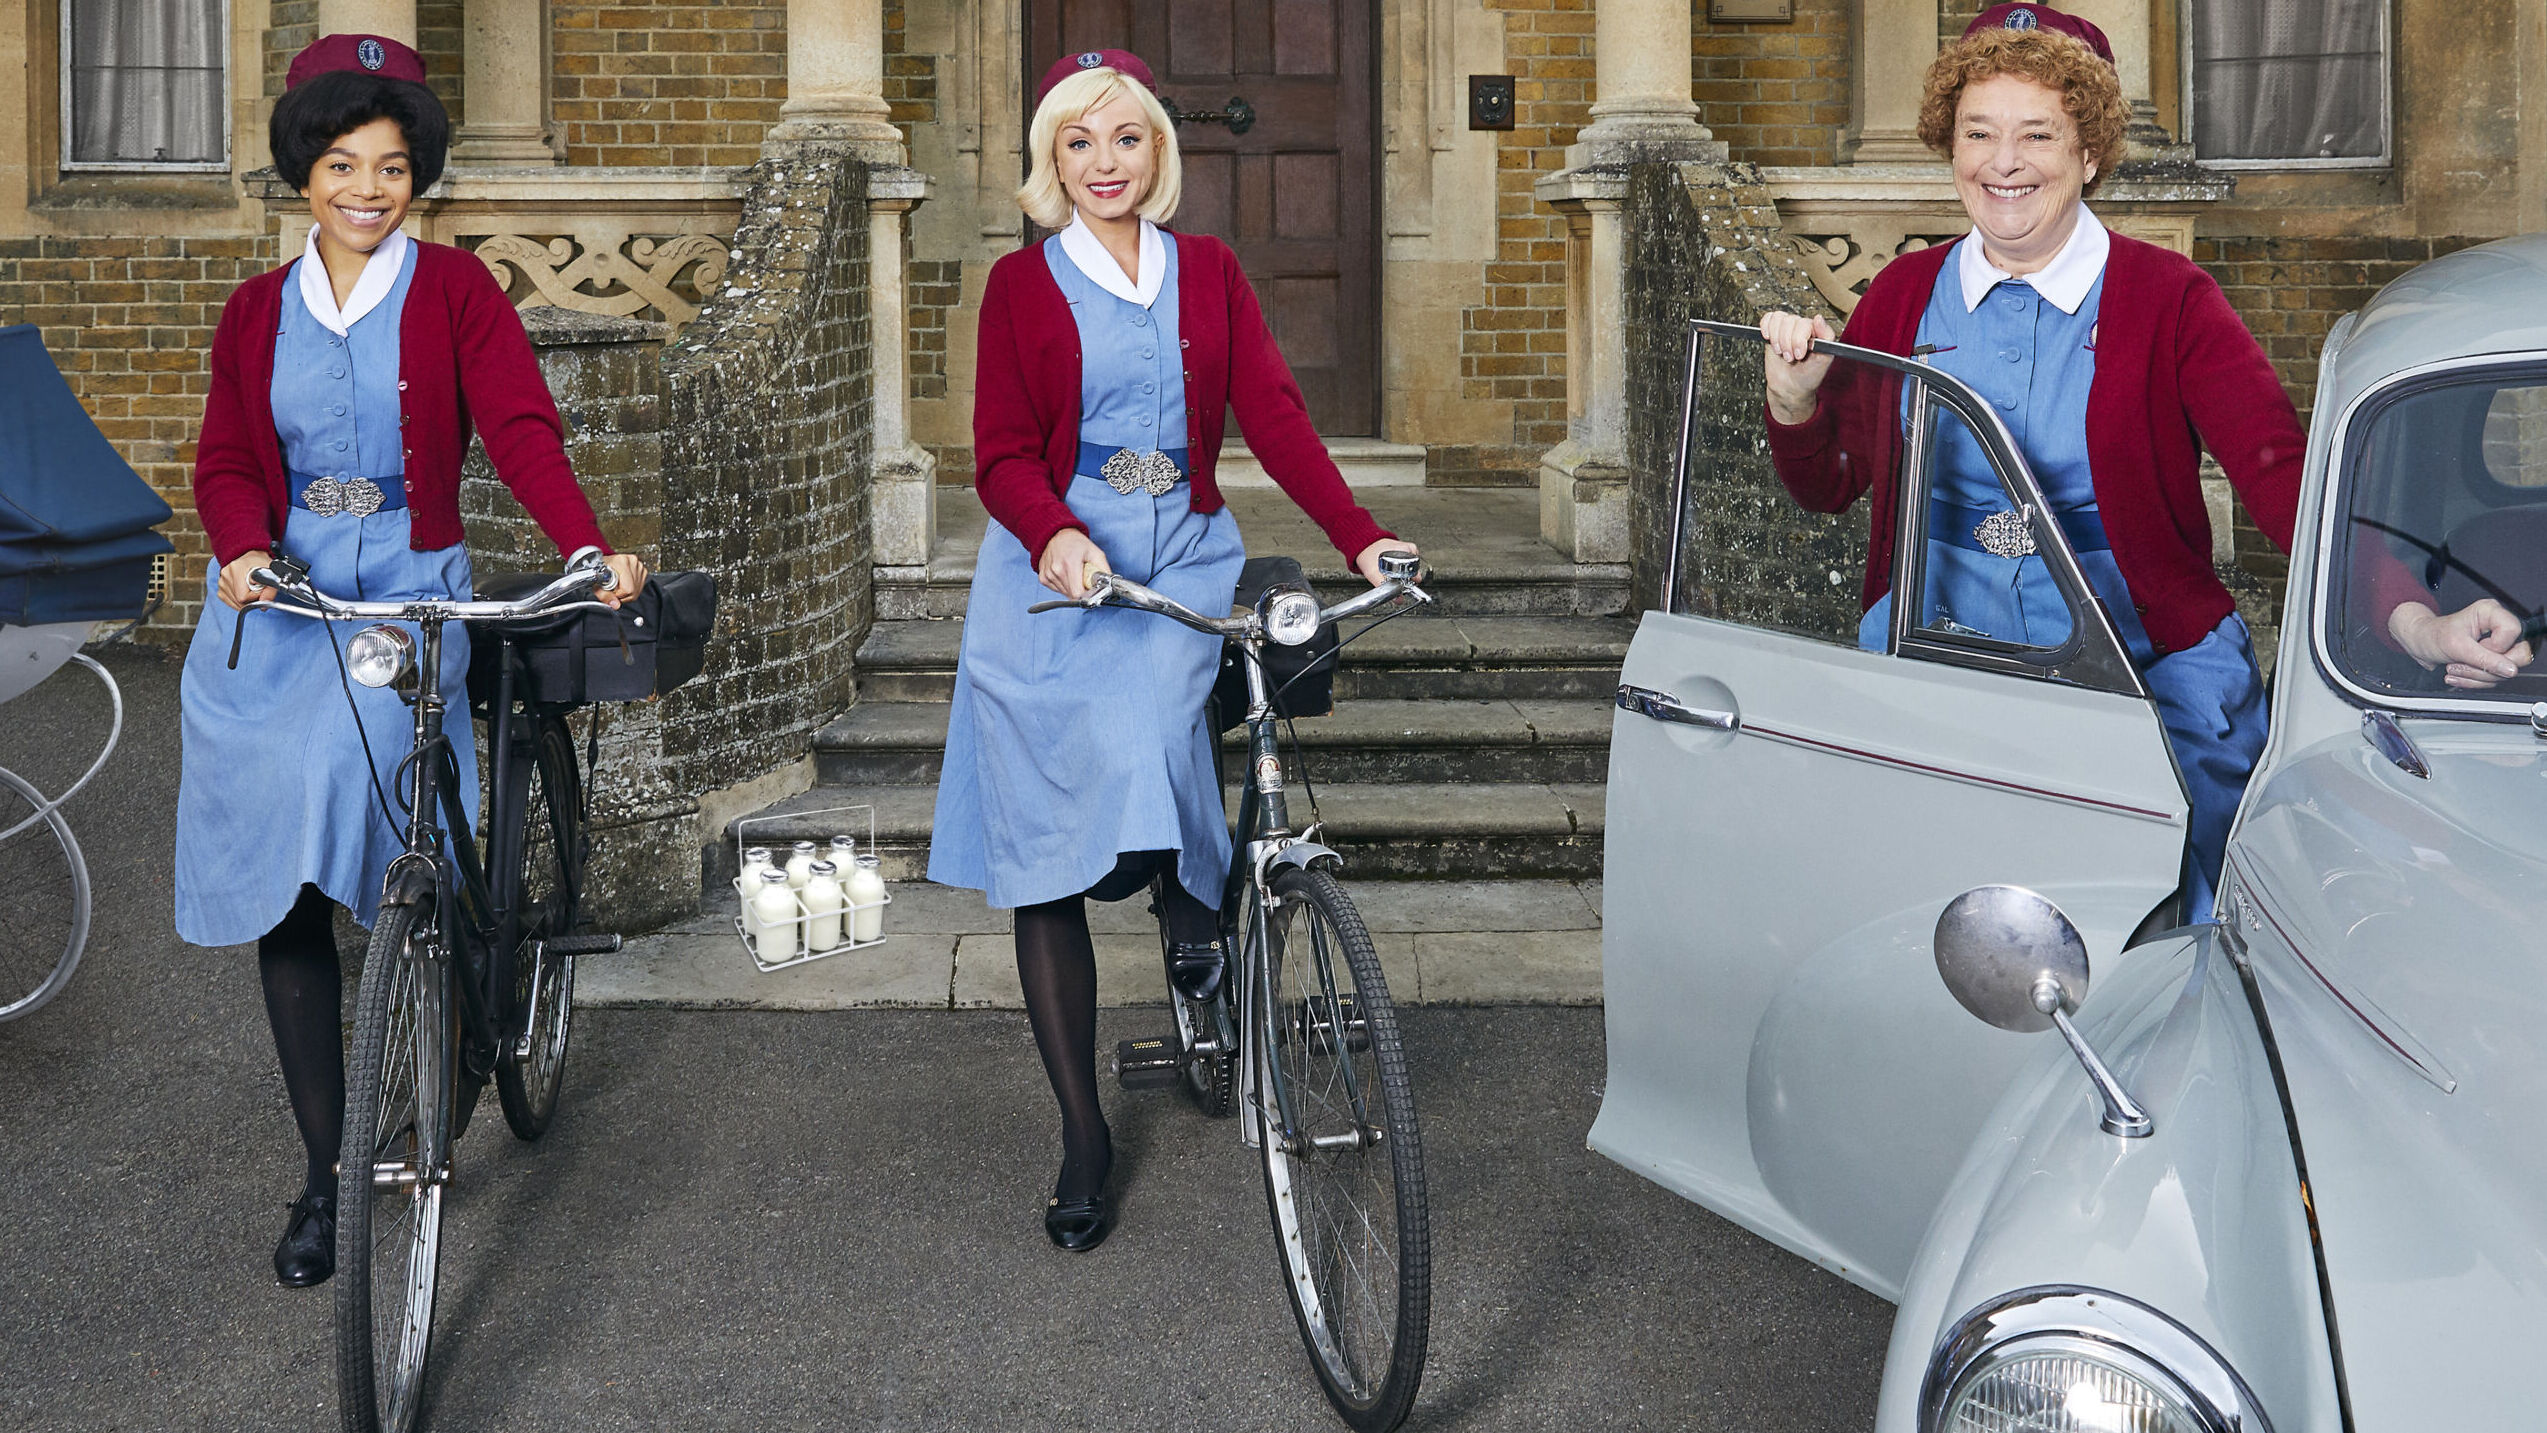 Three women are dressed in uniform of blue dress with maroon sweater and caps; two younger ones stand near bicycles; the older one behind a car door of a VW Beetle. They are in front of a large house.